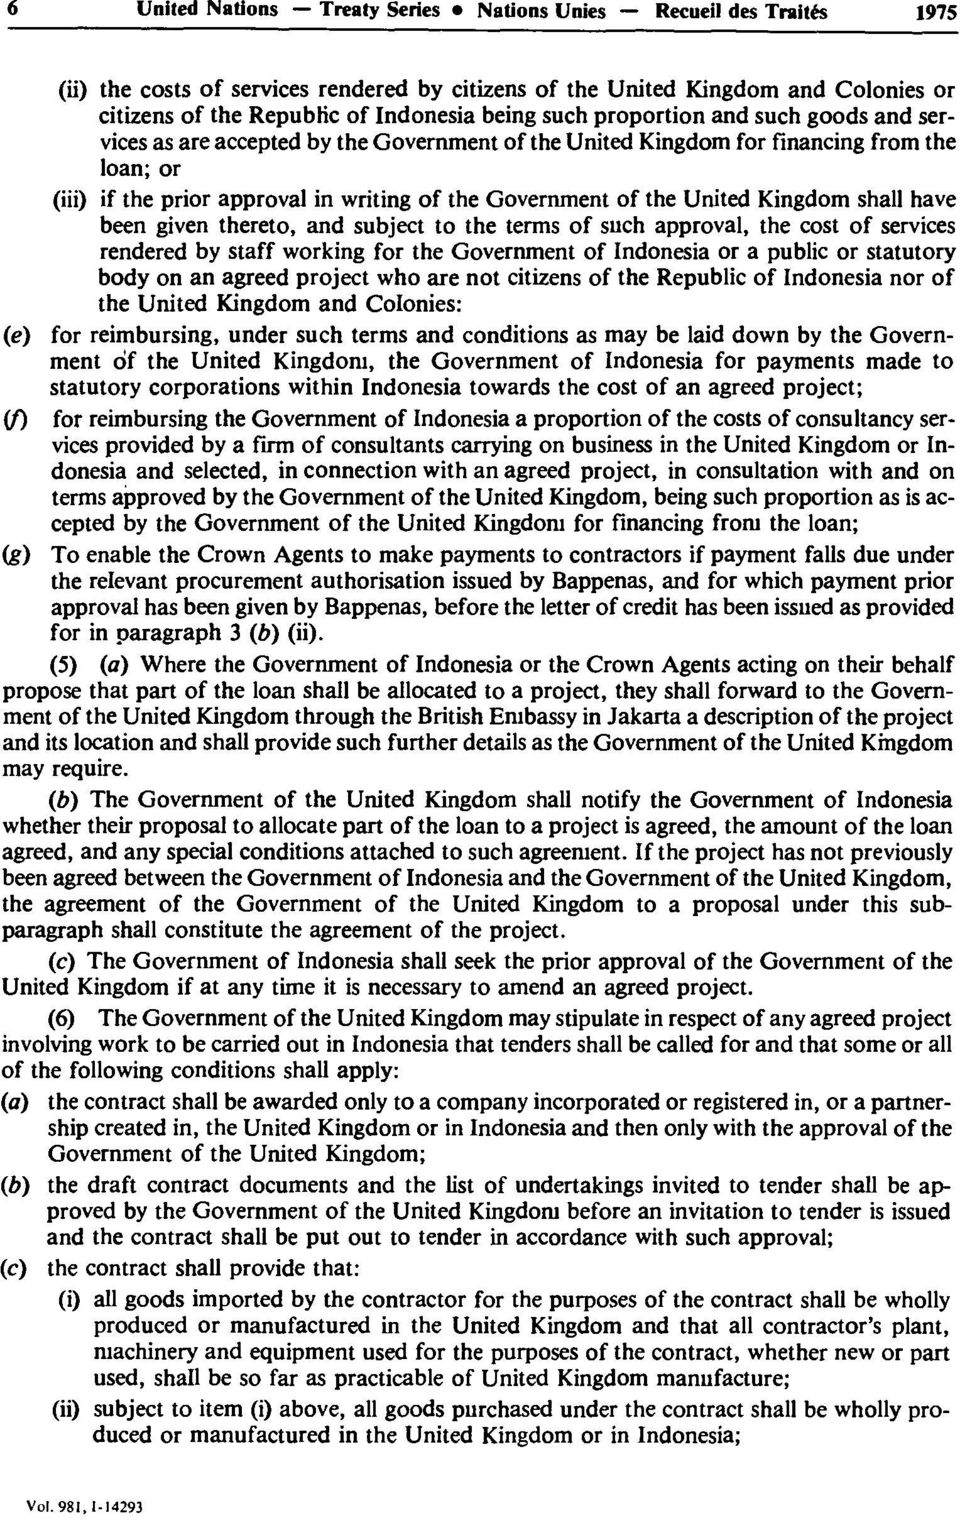 the United Kingdom shall have been given thereto, and subject to the terms of such approval, the cost of services rendered by staff working for the Government of Indonesia or a public or statutory